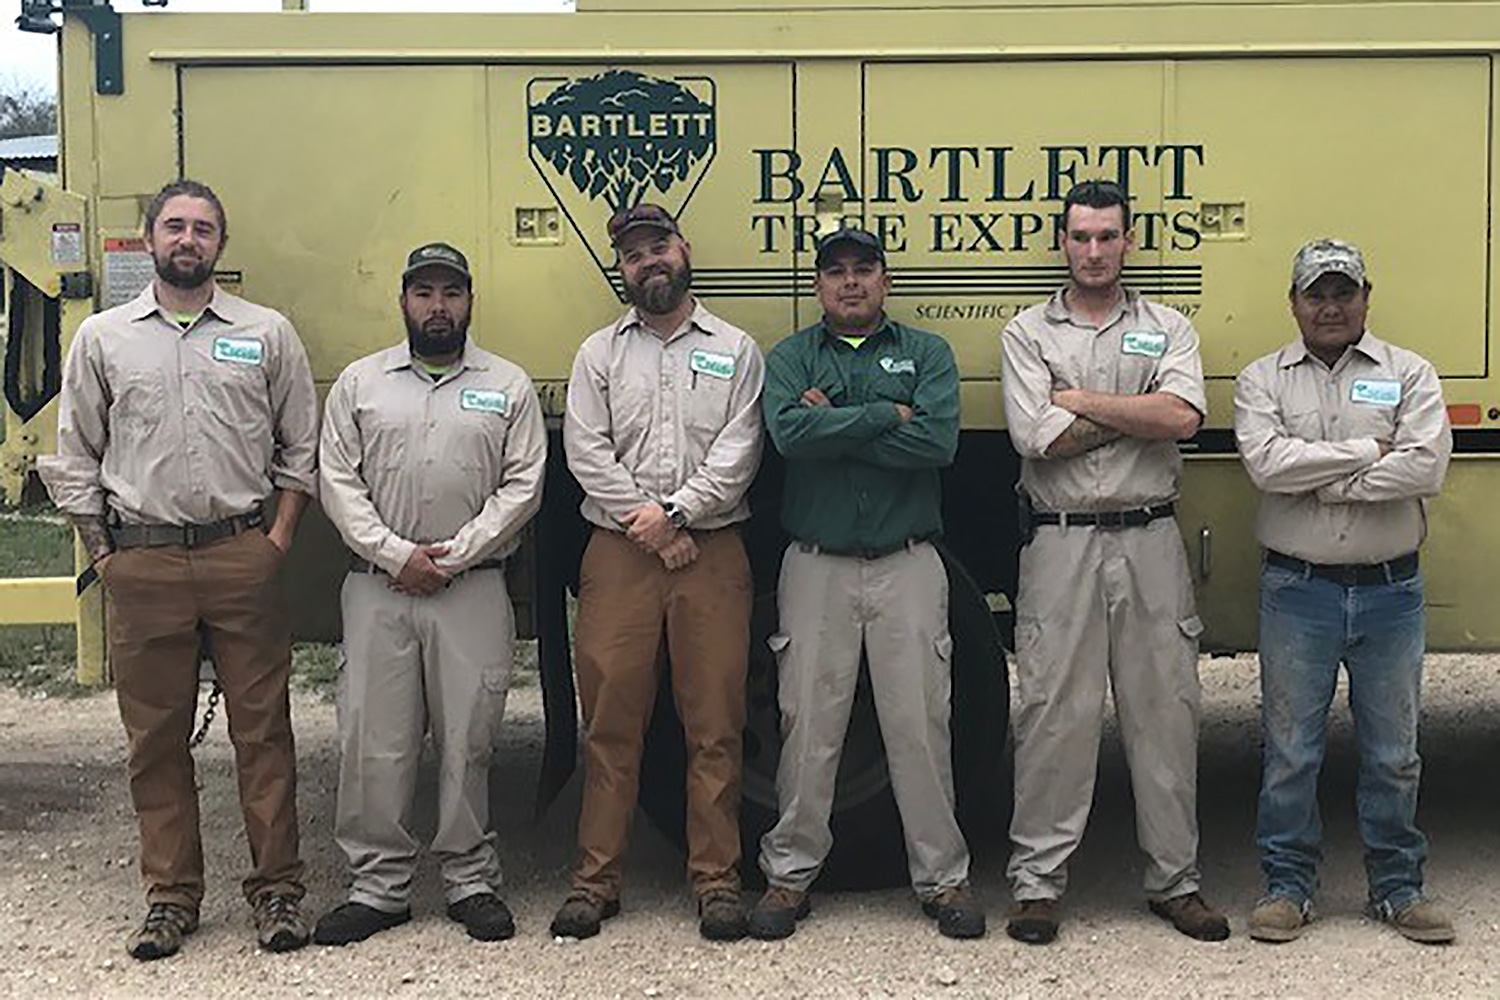 Bartlett Tree Experts: Tree Service and Shrub Care in New Braunfels, TX